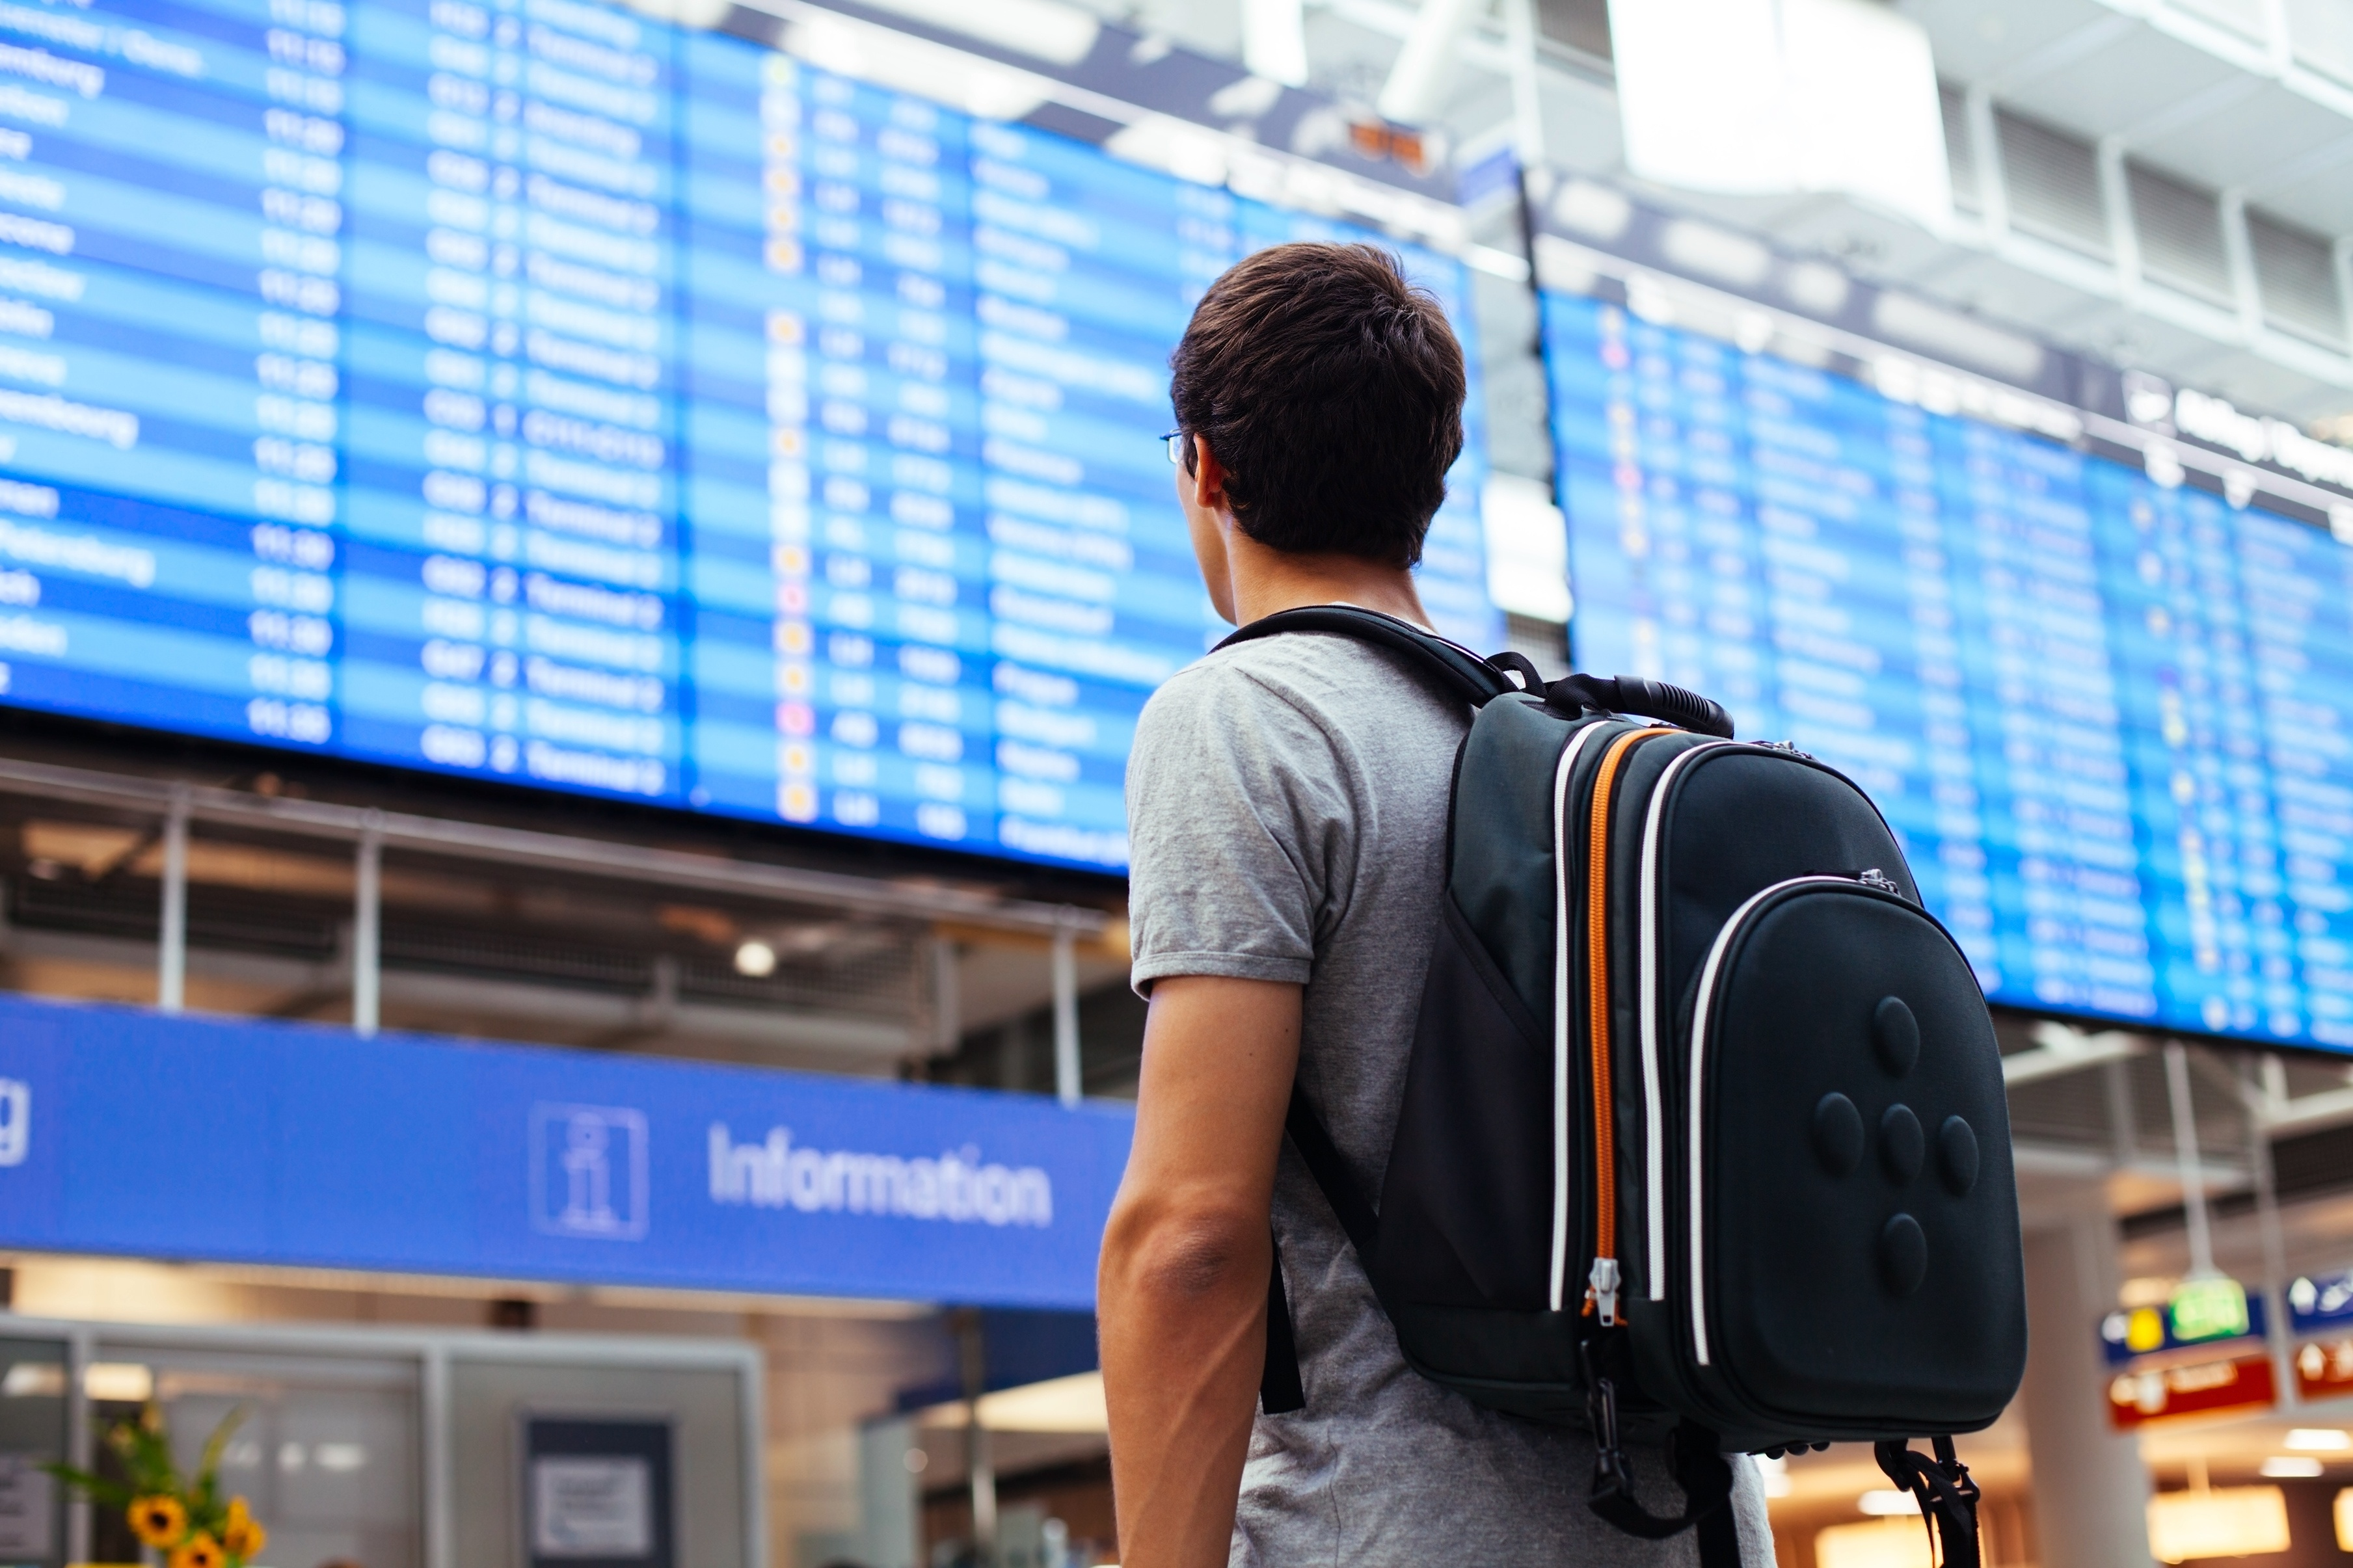 Innovative travel agencies can win millennial customers